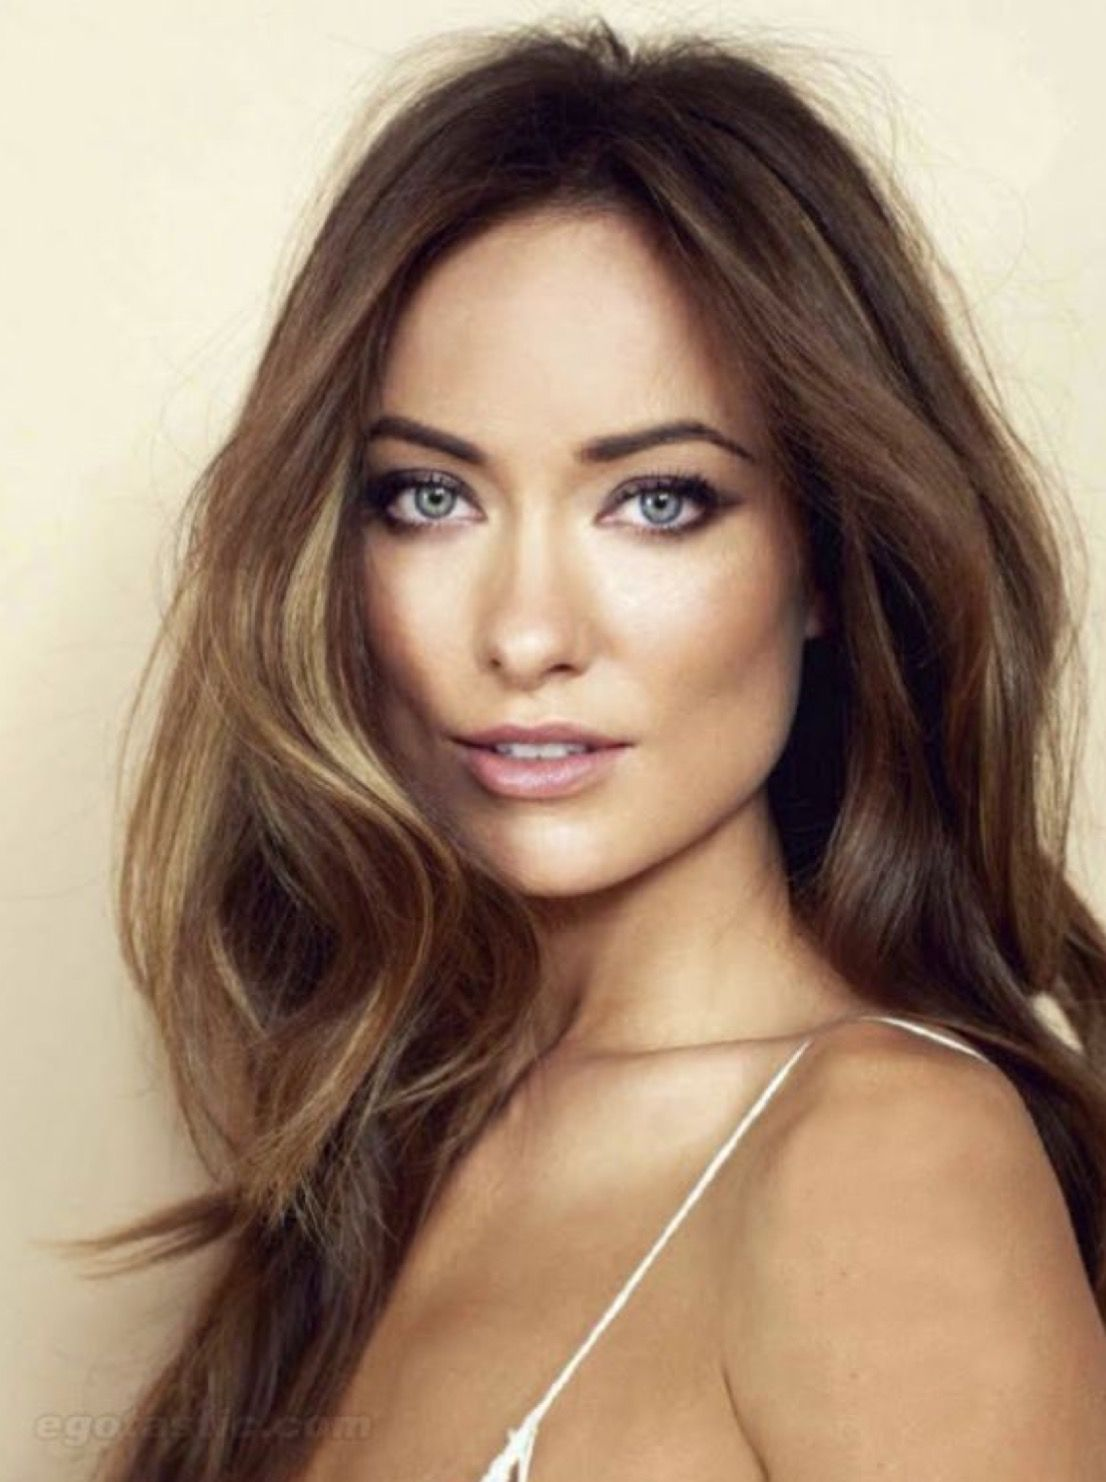 Pin by chelle belle on famous FEMALE faces Olivia wilde